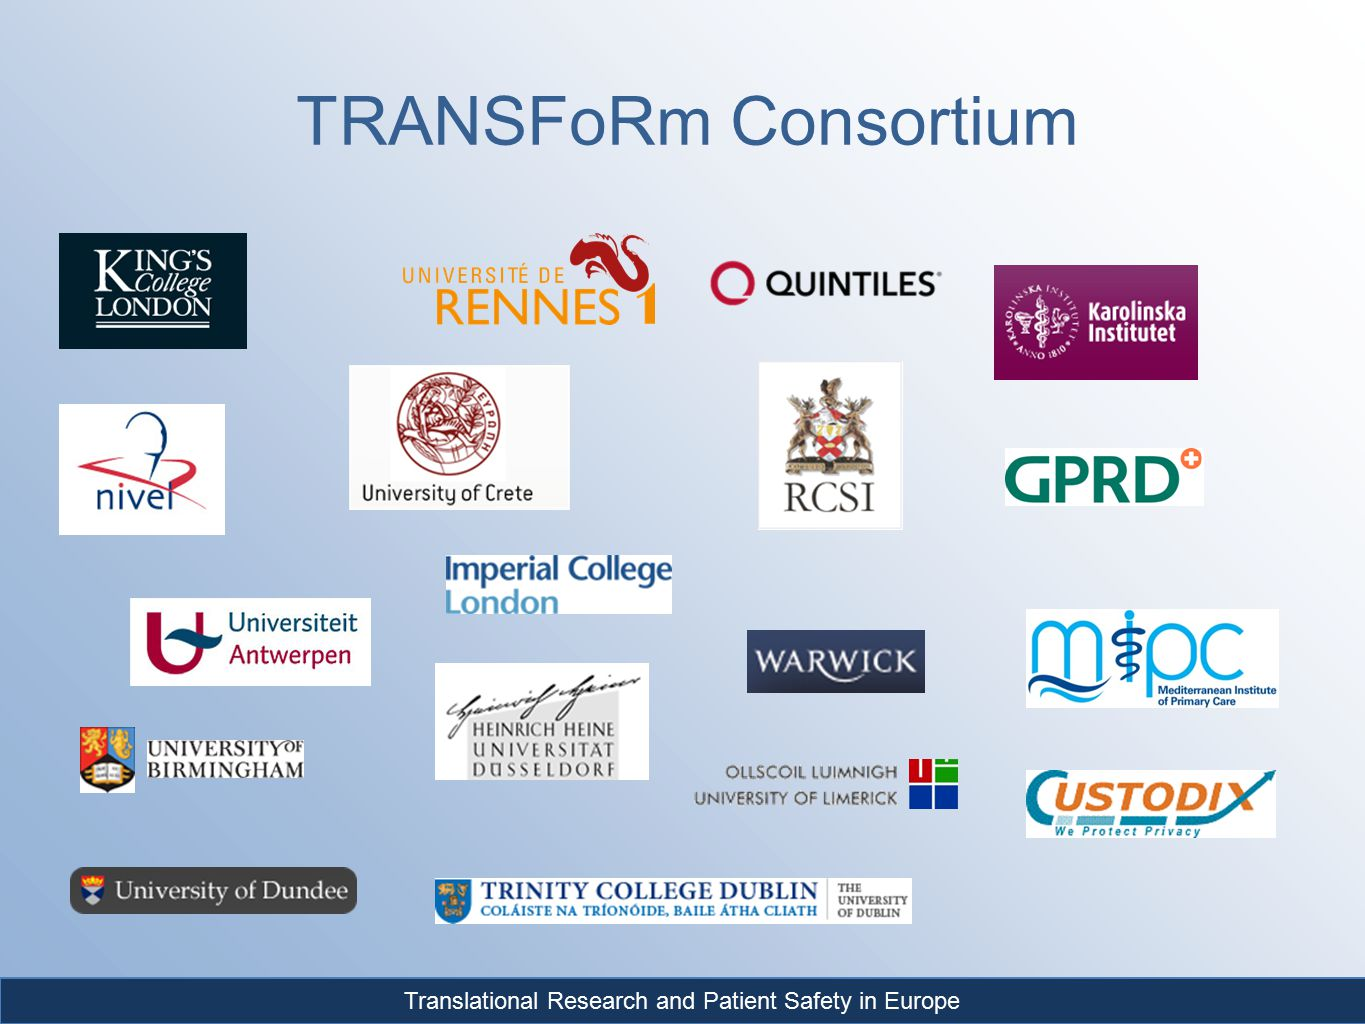 Translational Research and Patient Safety in Europe TRANSFoRm Consortium